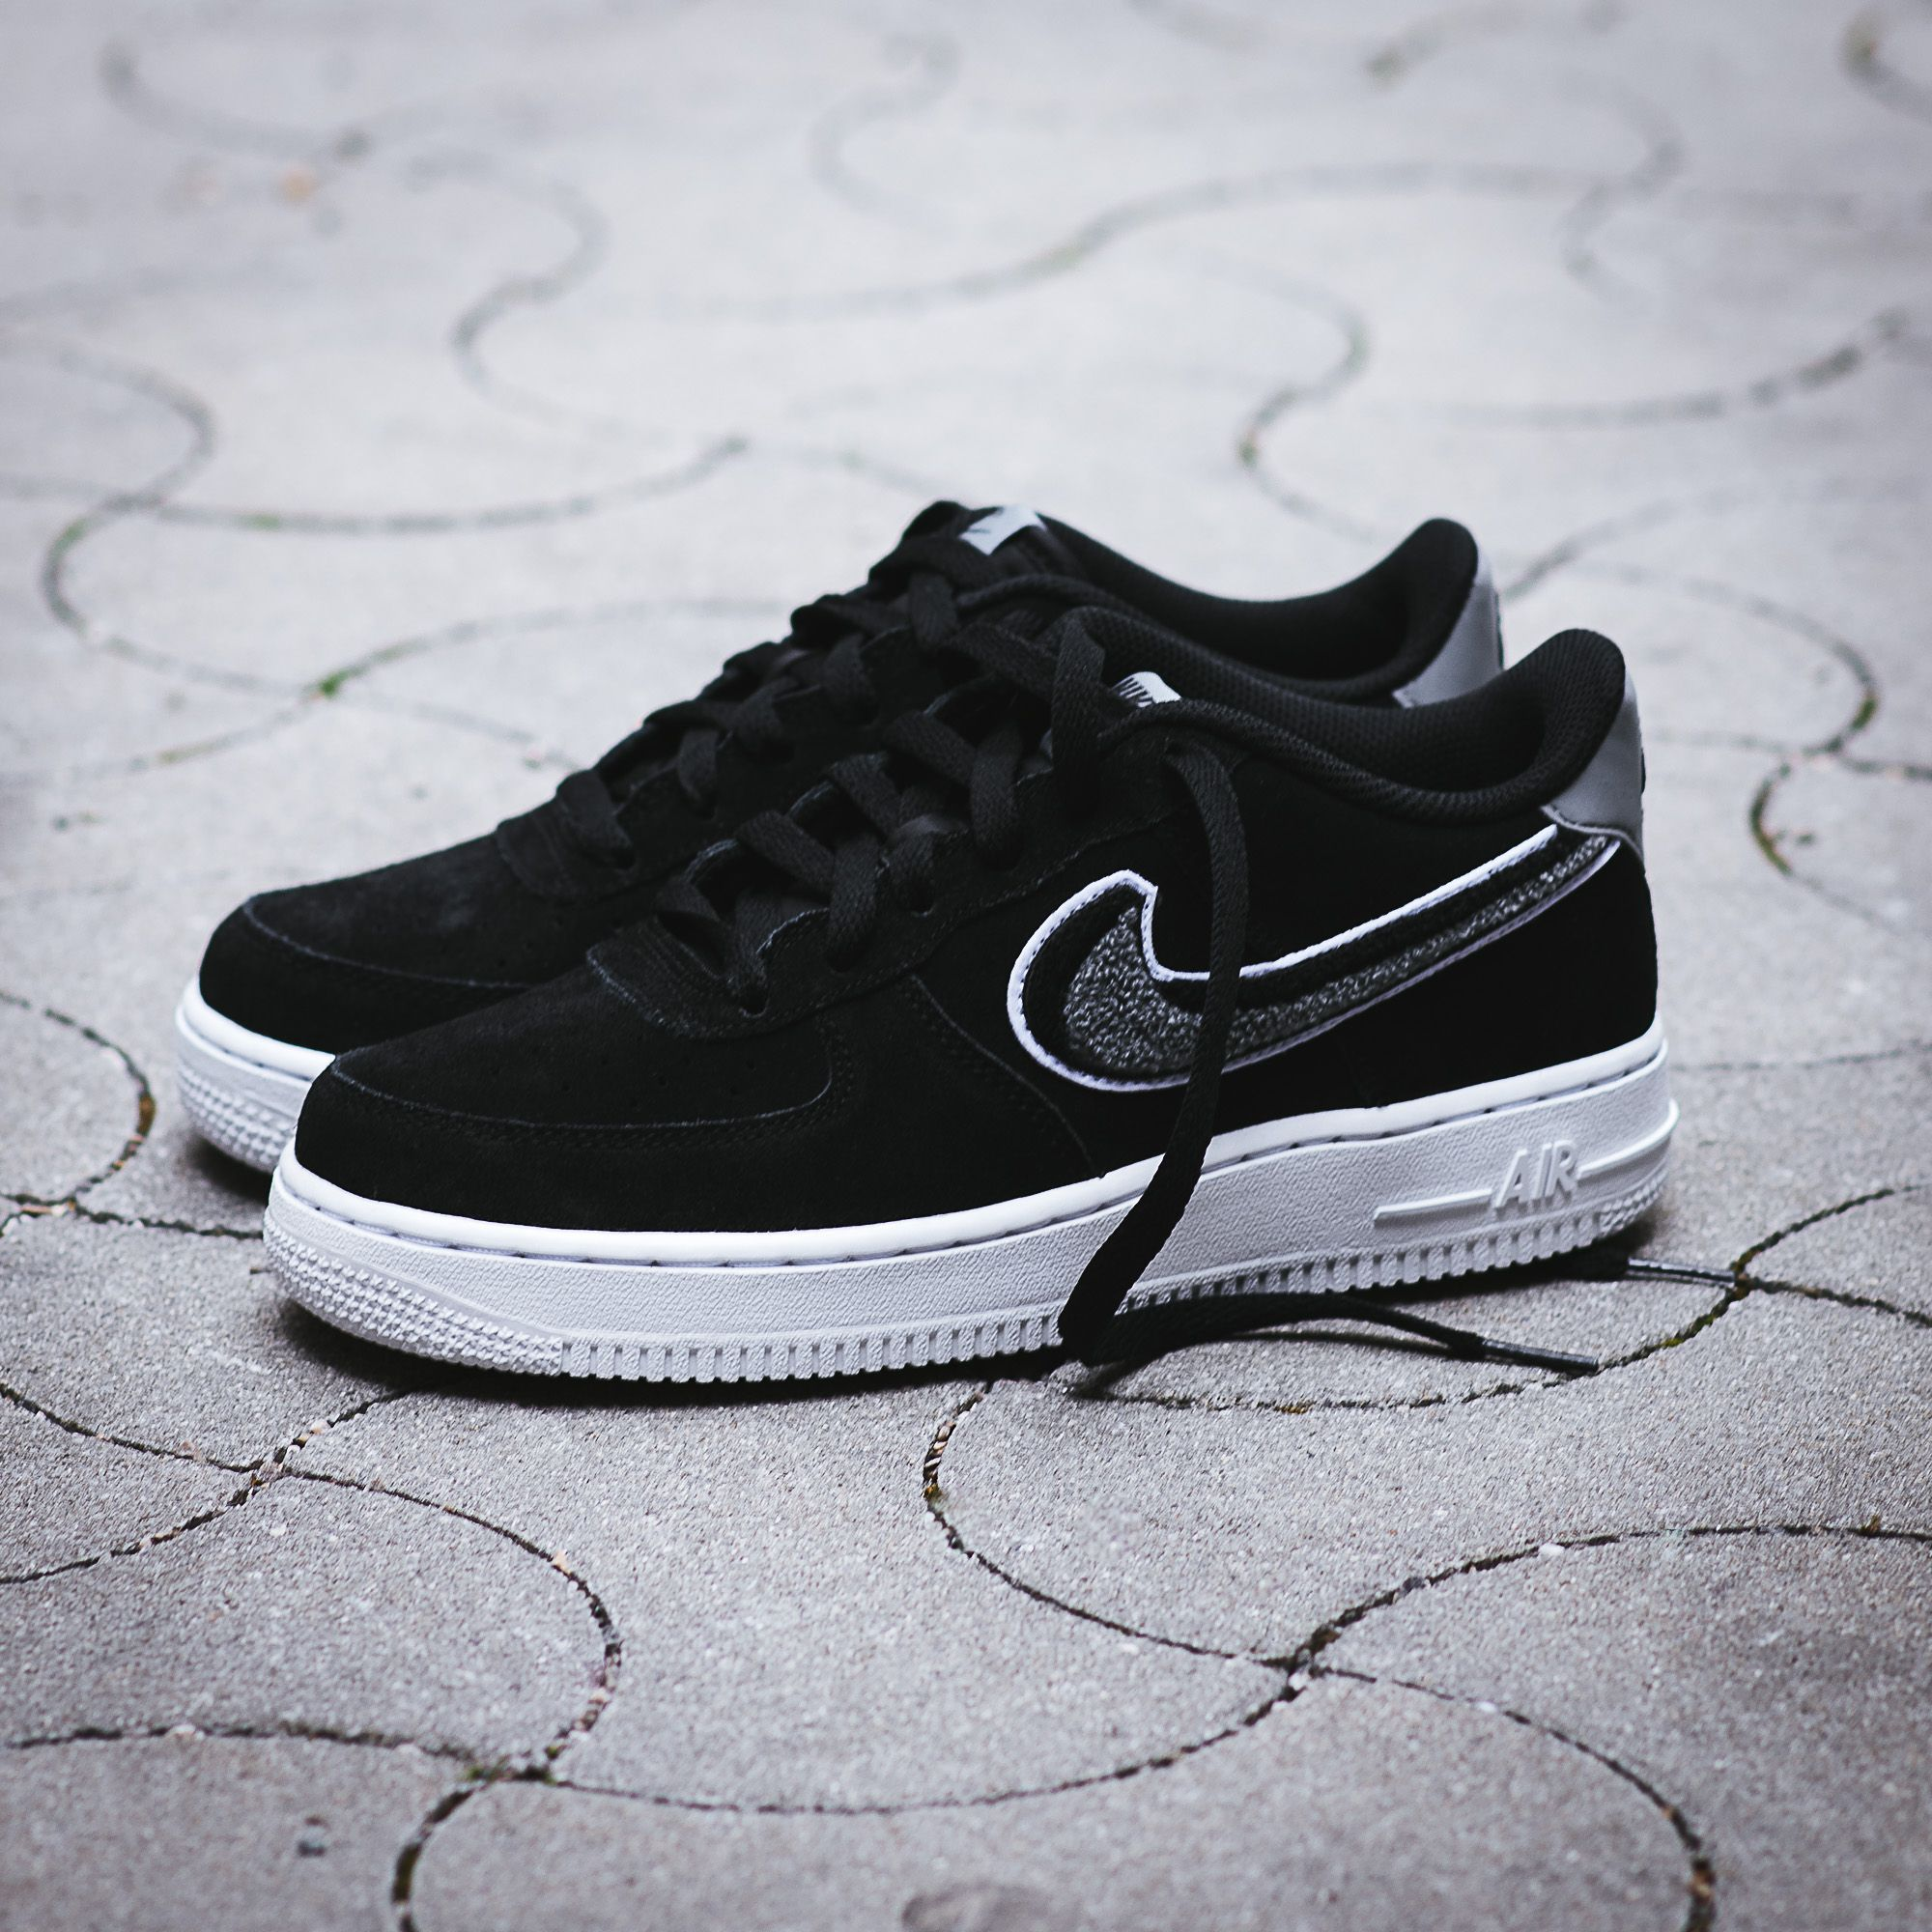 Put A Little Extra On These Air Force One S Gs Version With A Double Stitched Plush Like Swoosh Get These Now On Nike Air Force Schwarze Turnschuhe Nike Air